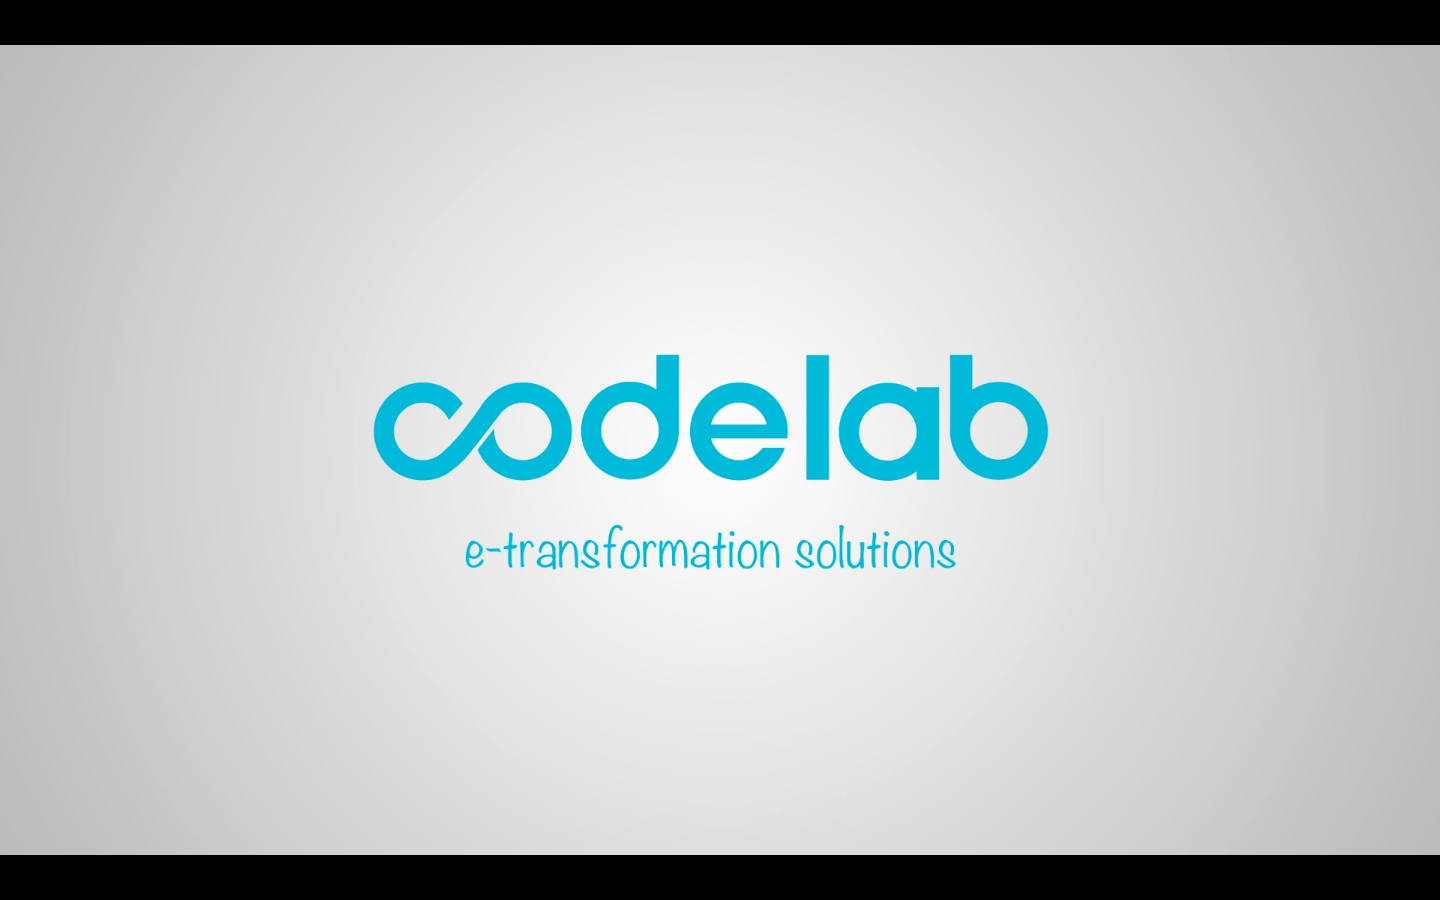 Codelab solutions promo